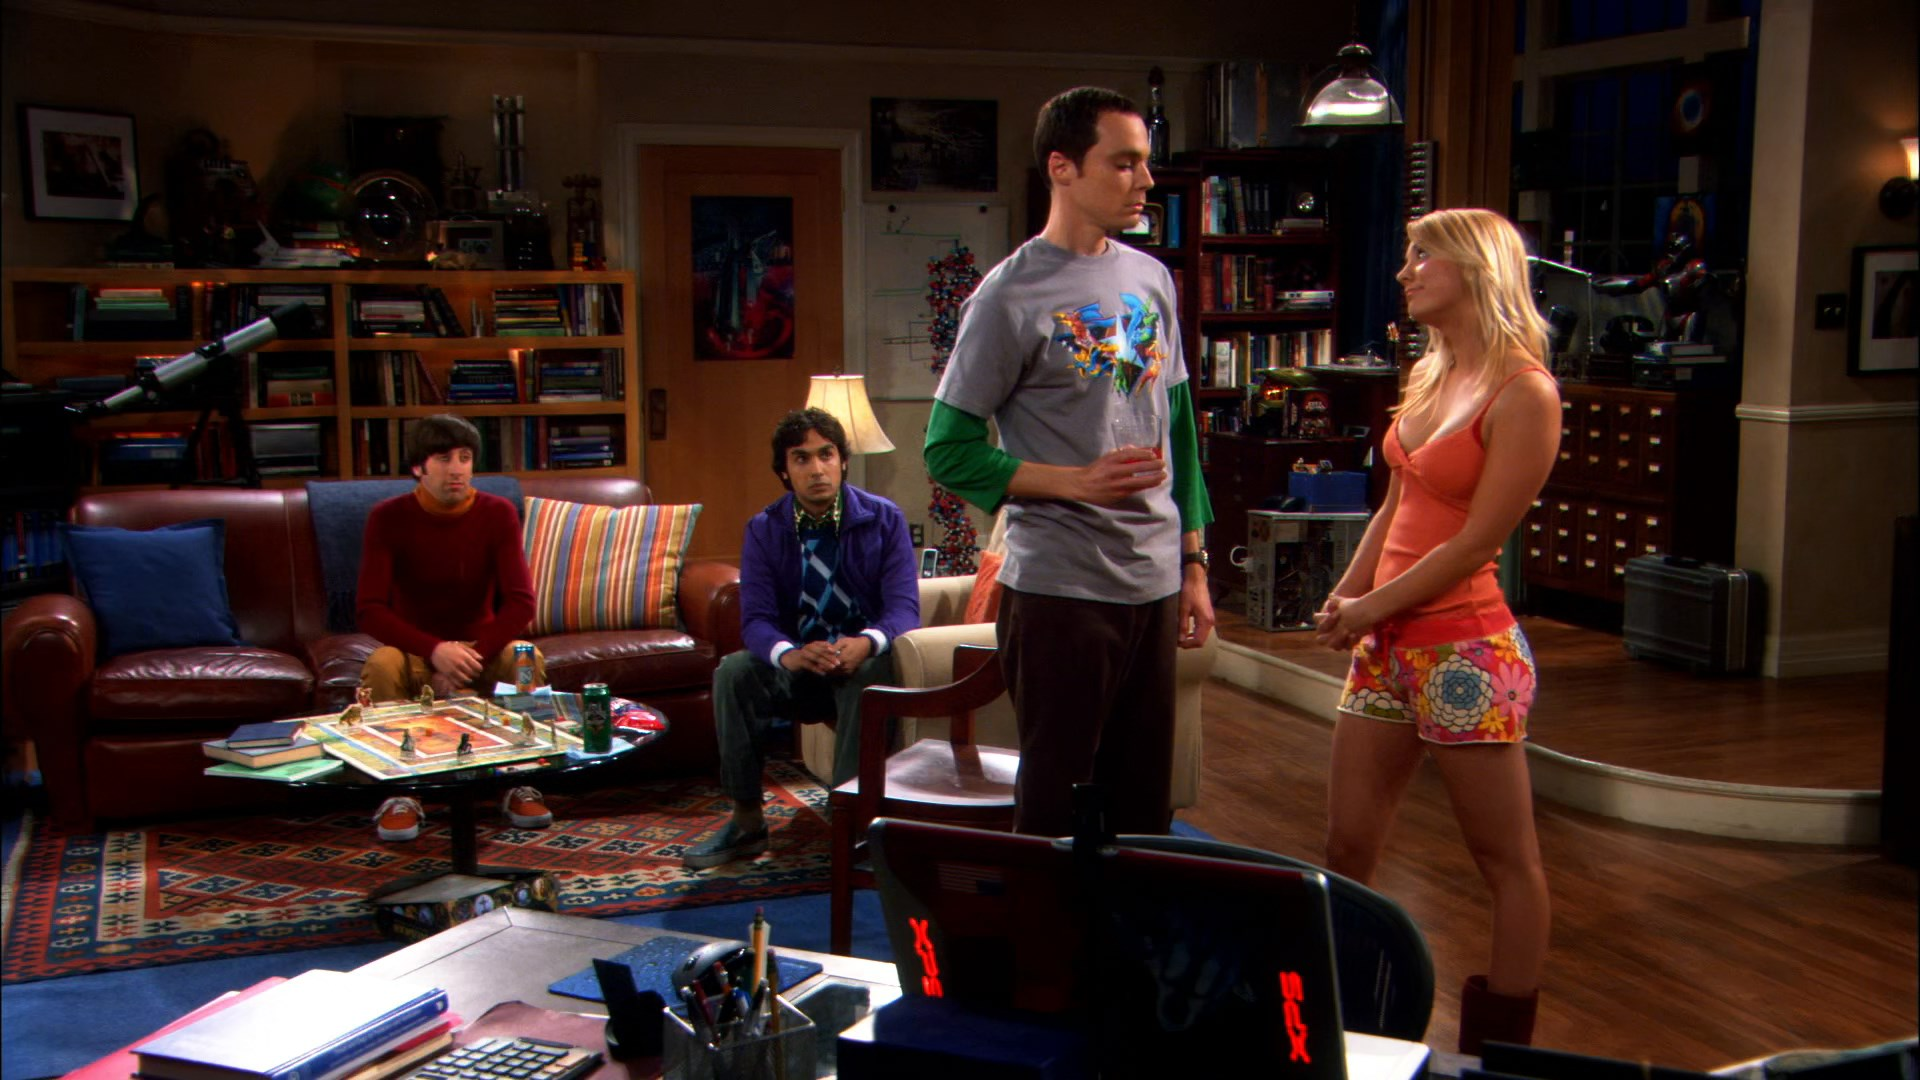 The Big Bang Theory S01 1080p BRrip|New Audio LAT